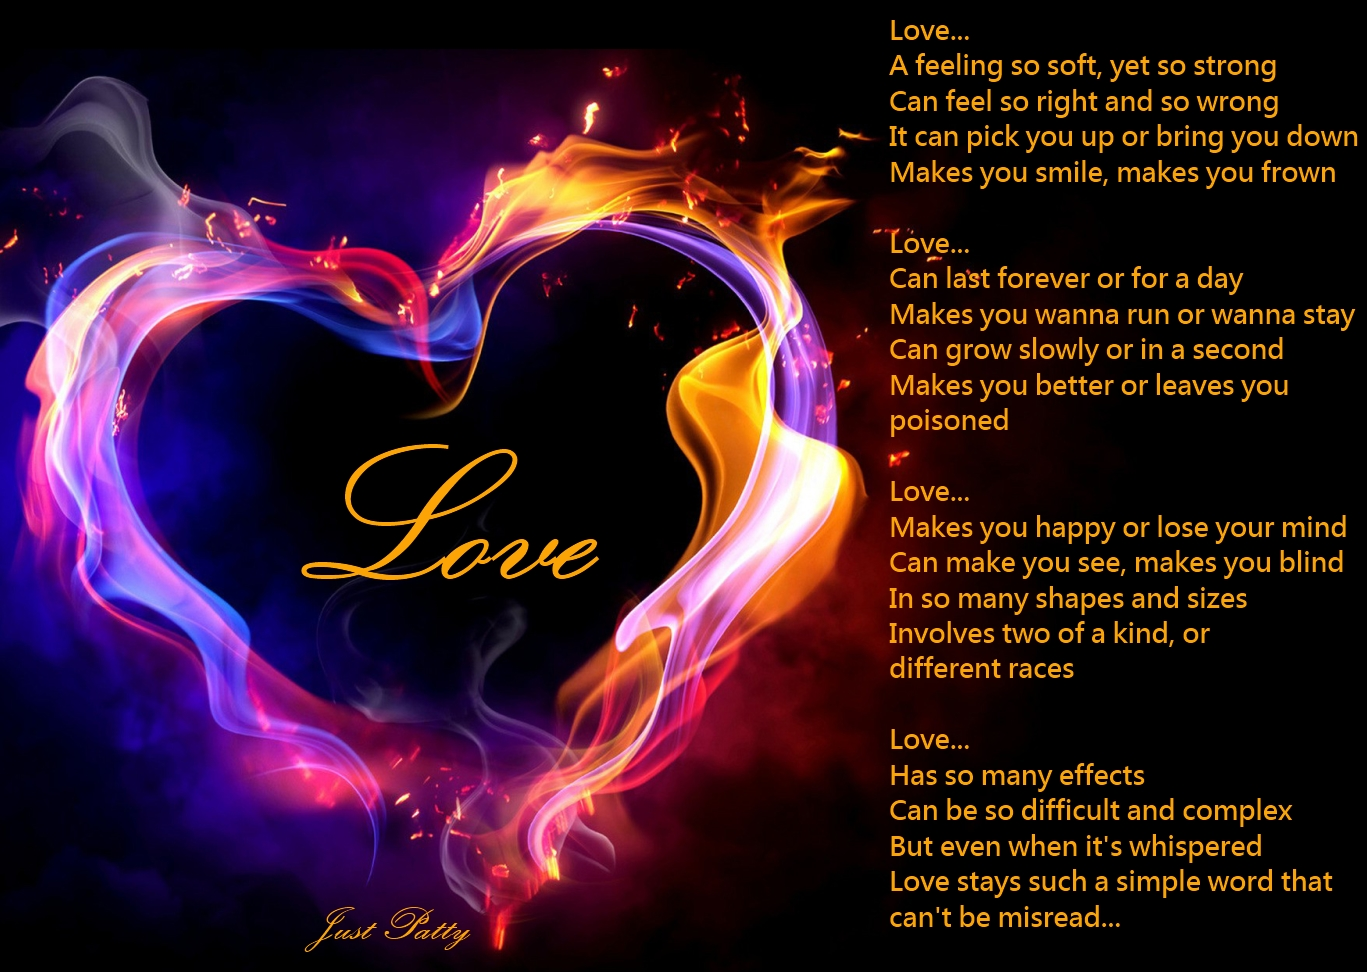 15 Cute Romantic Love Poems For Her Love Dignity